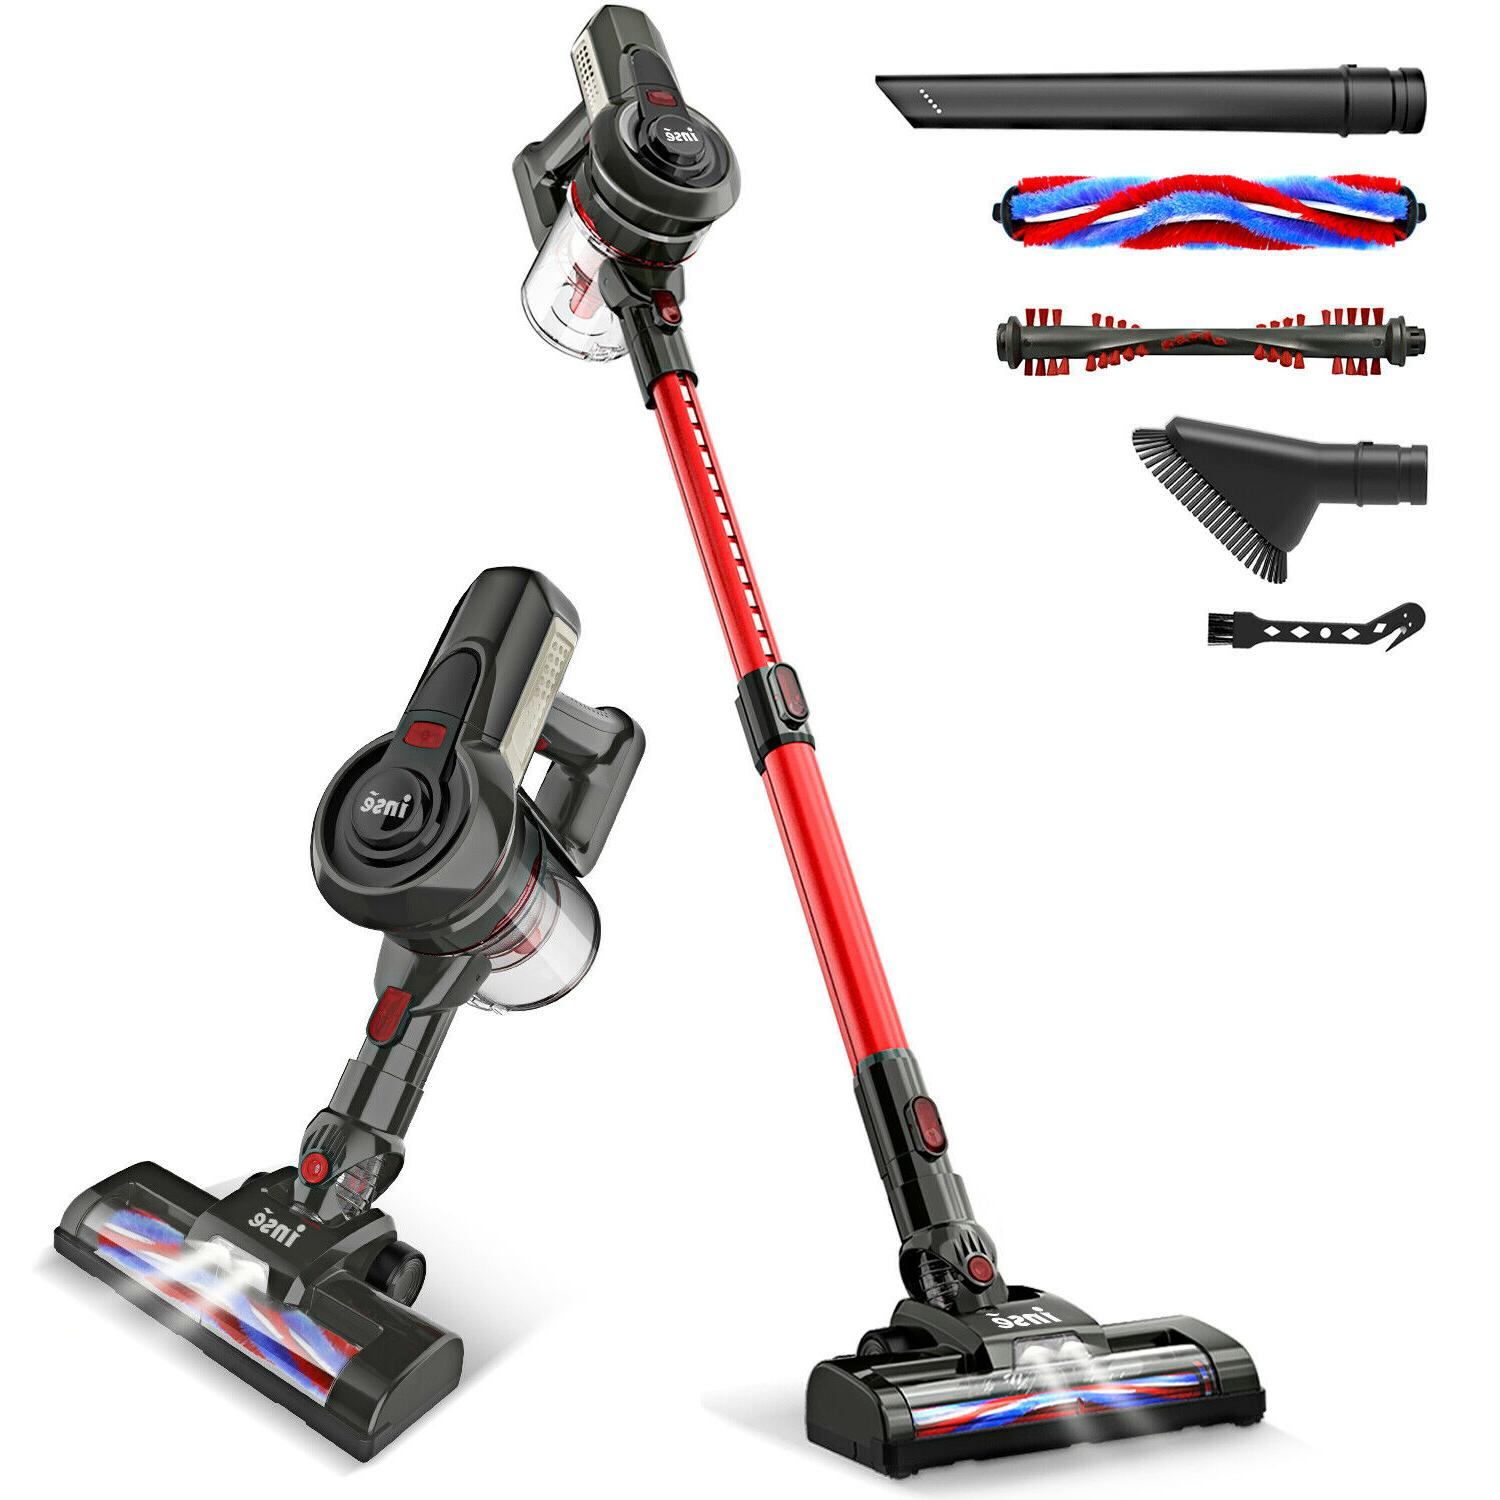 INSE Cordless 12KPa Vacuum Cleaner 2-in-1 Stick Upright Comp